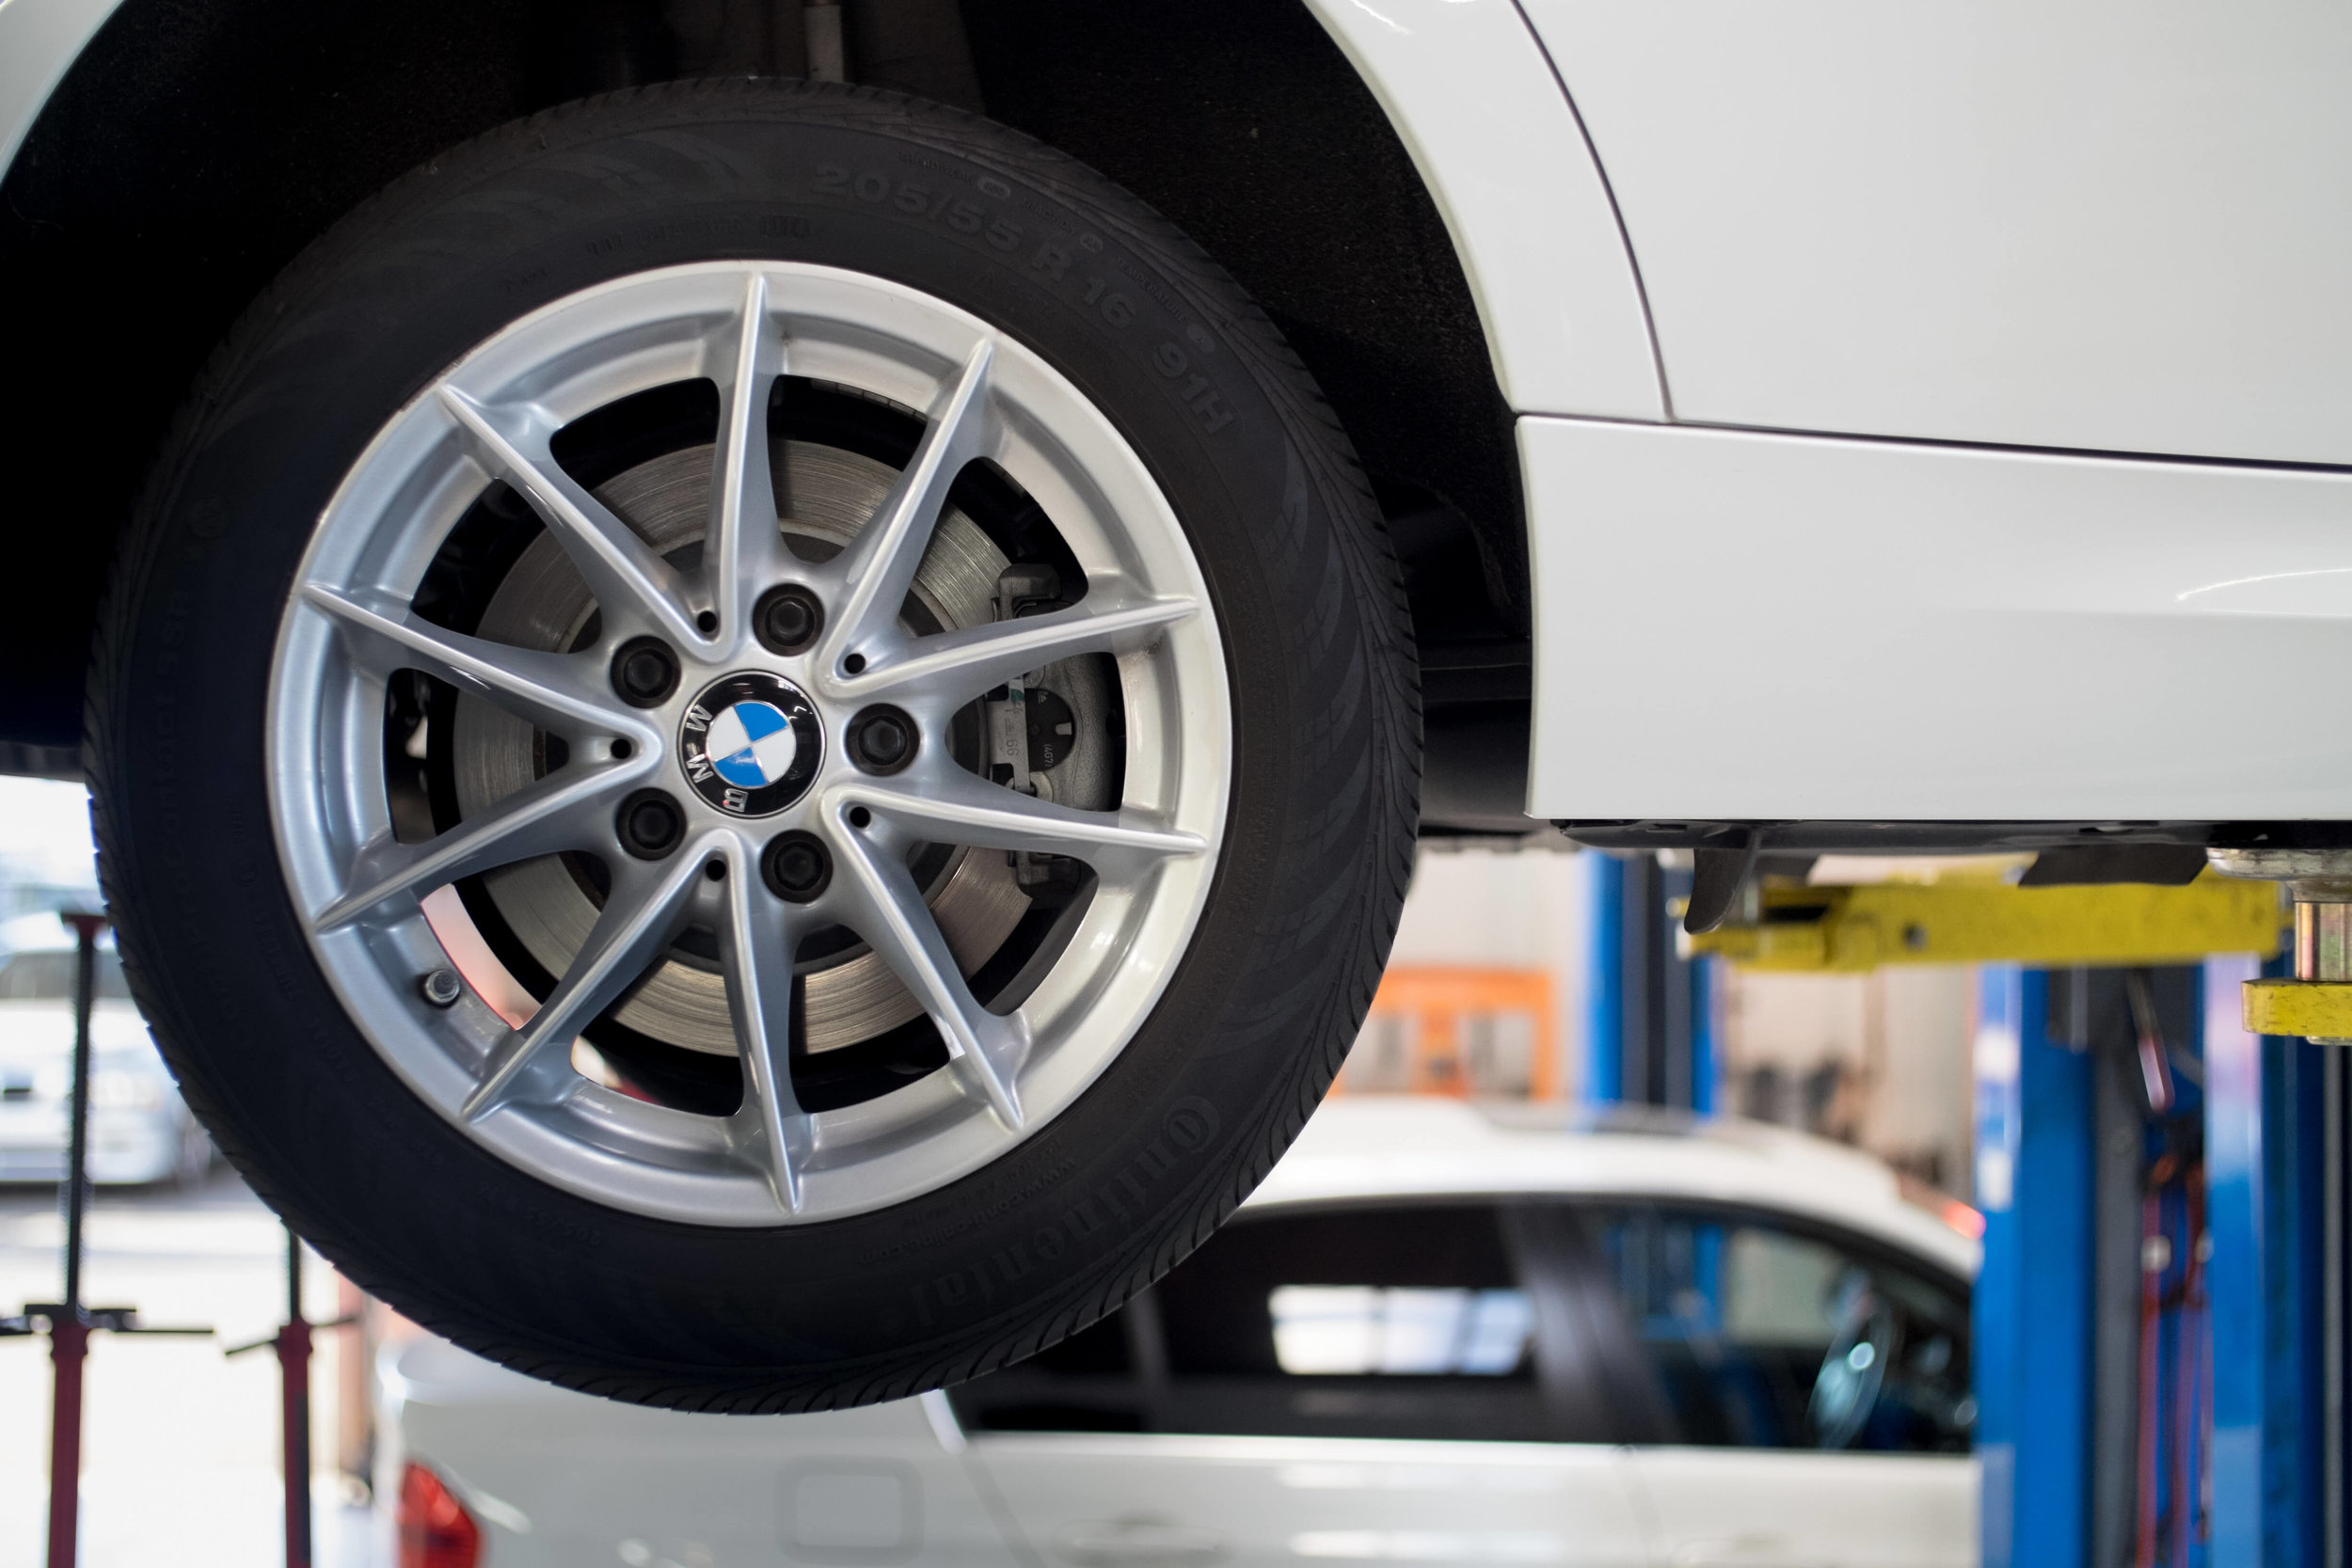 Service and Repair BMWs in San Diego with OEM parts